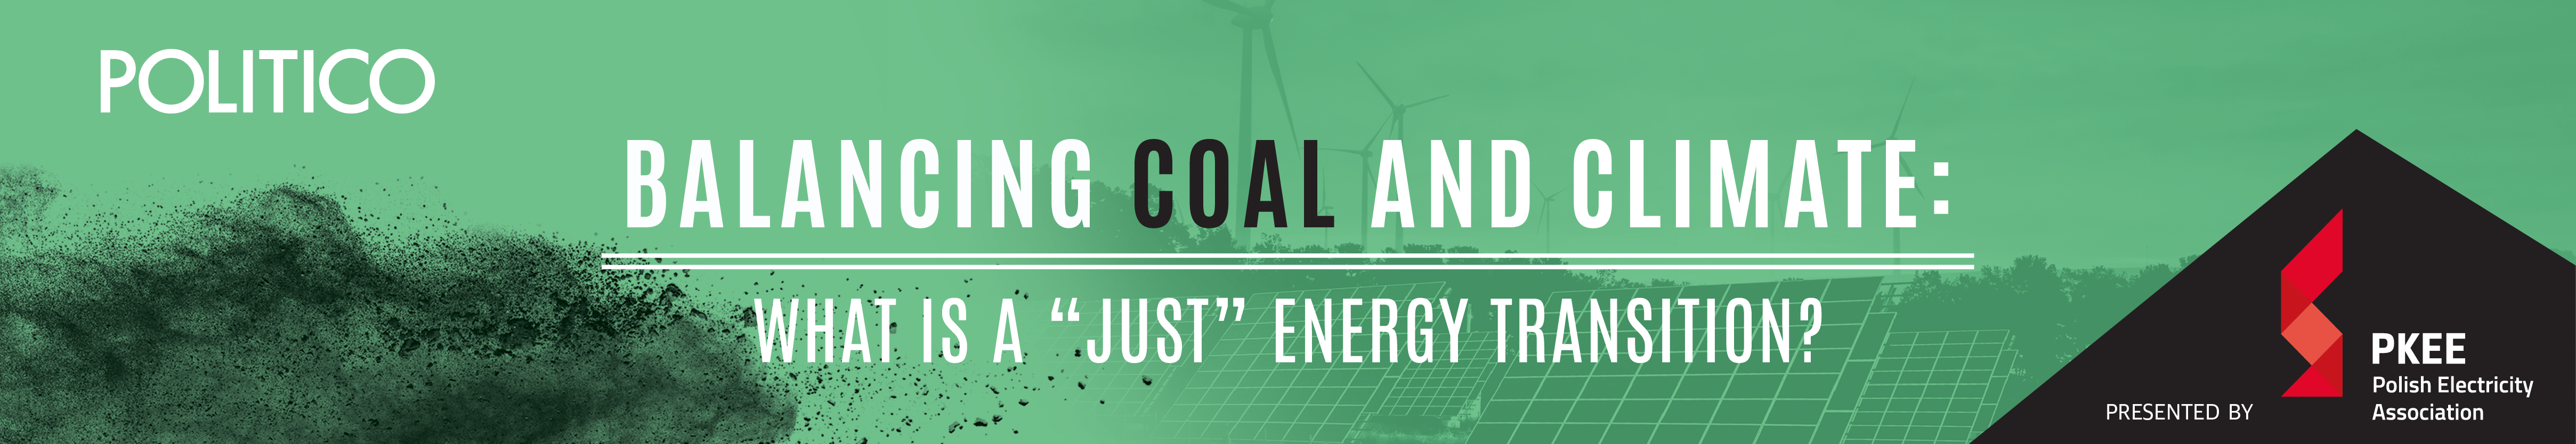 "Balancing coal and climate – what is a ""just"" energy transition?"